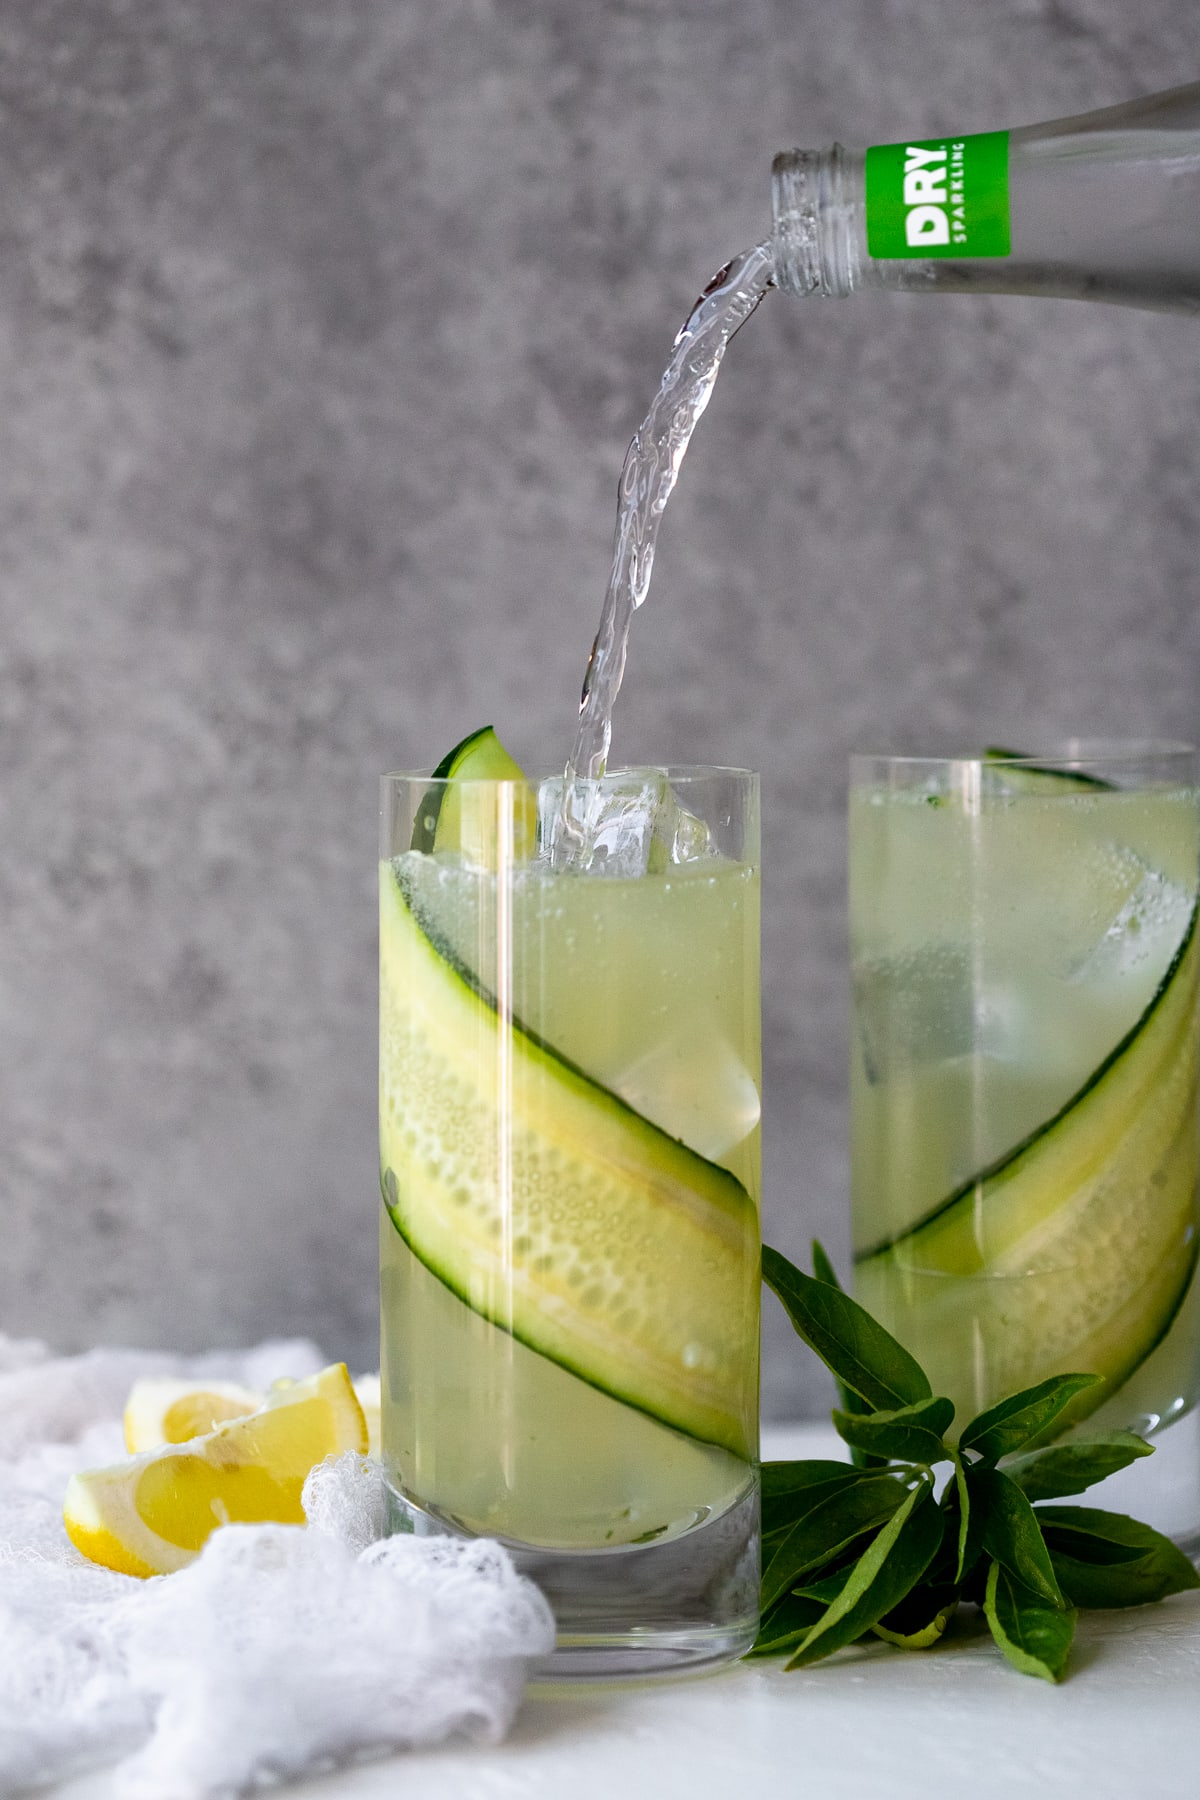 Process shot of cucumber soda being poured into a gin fizz, with lemon wedges and a sprig of basil in the background.